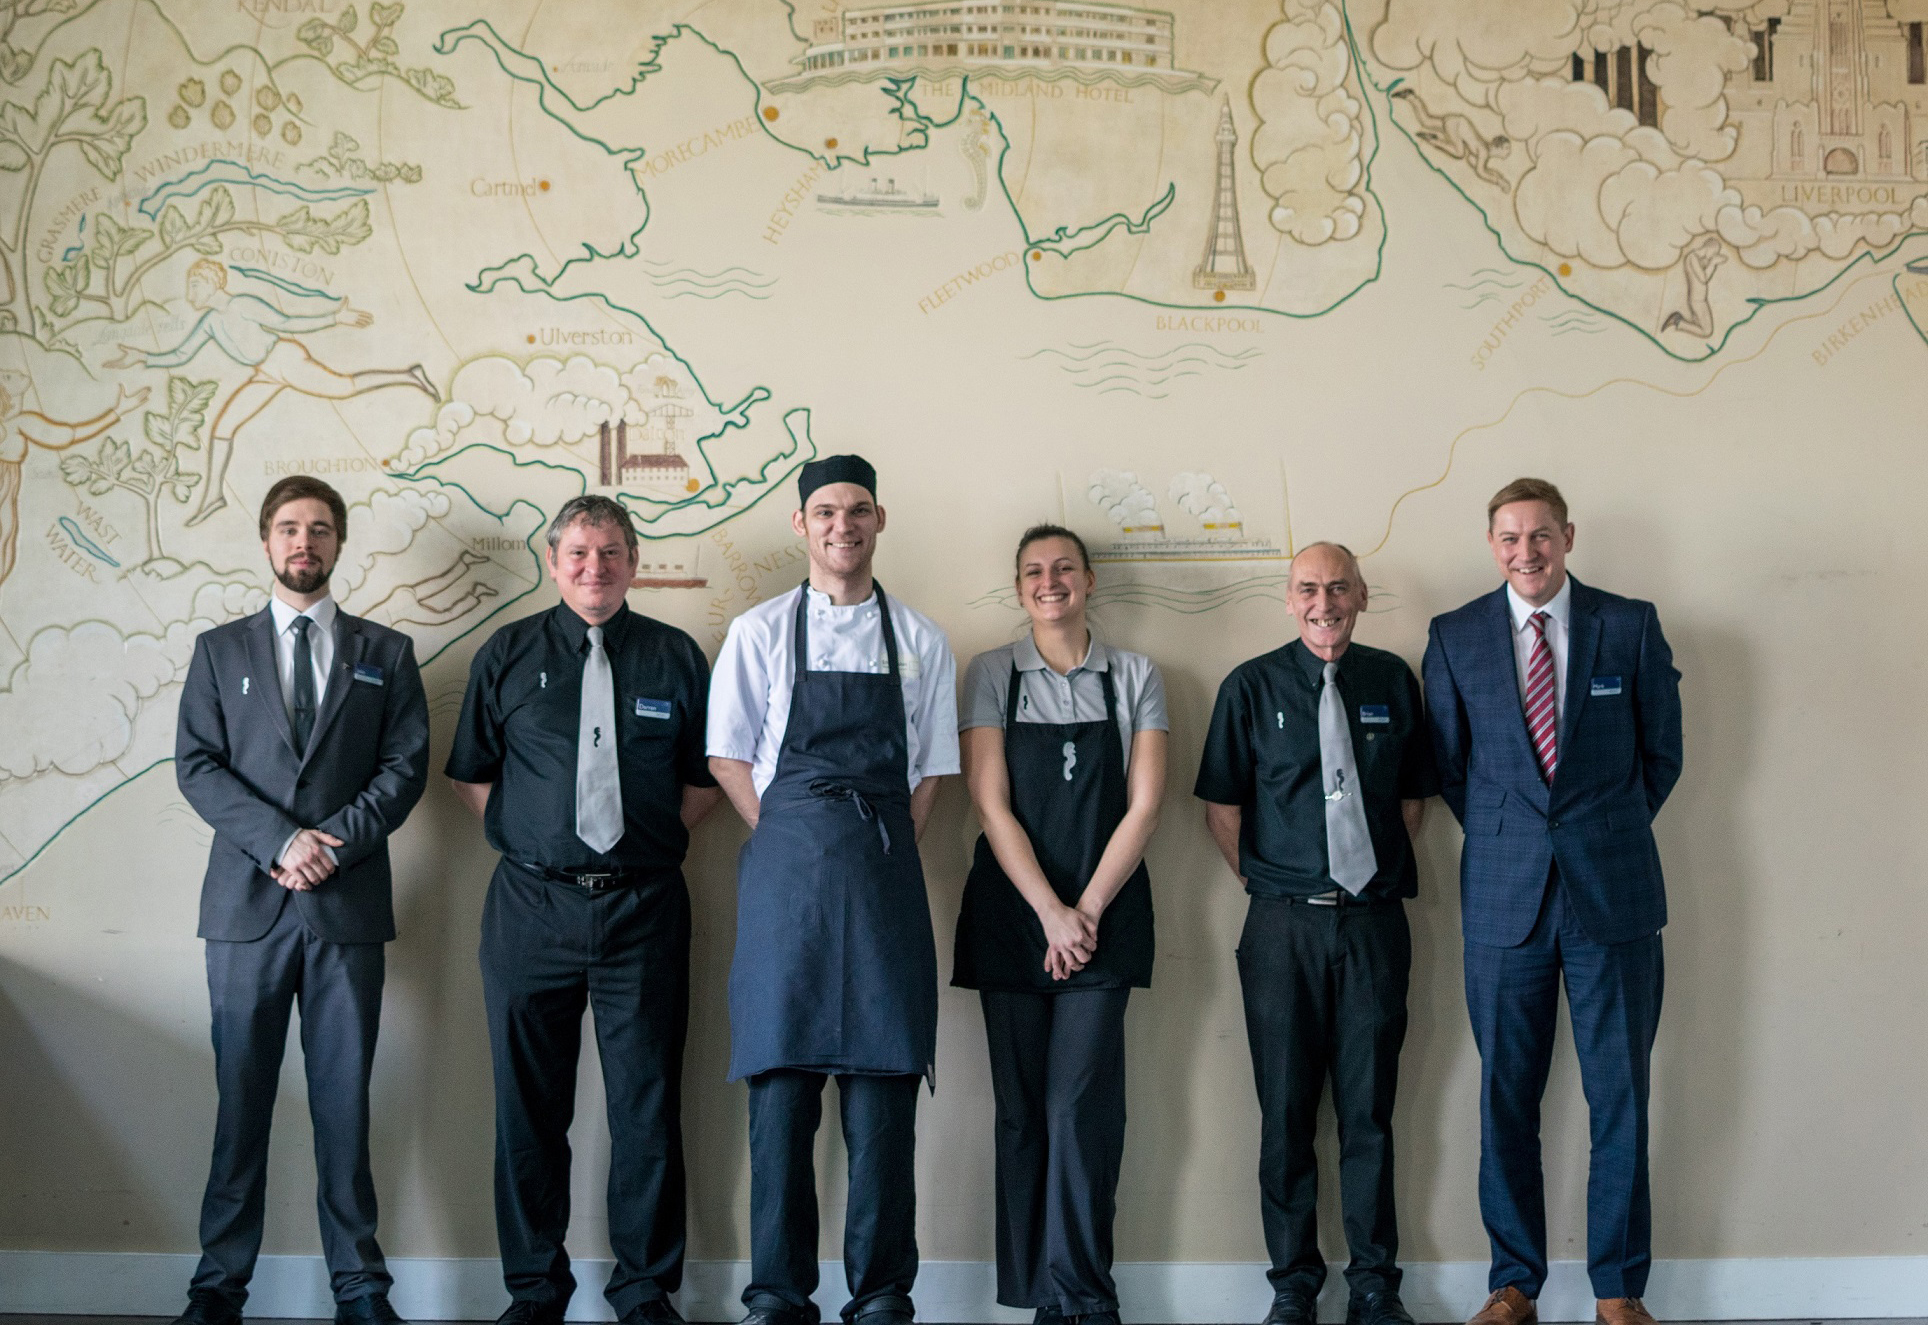 Midland Hotel staff will be celebrating a 10th anniversary in 2018